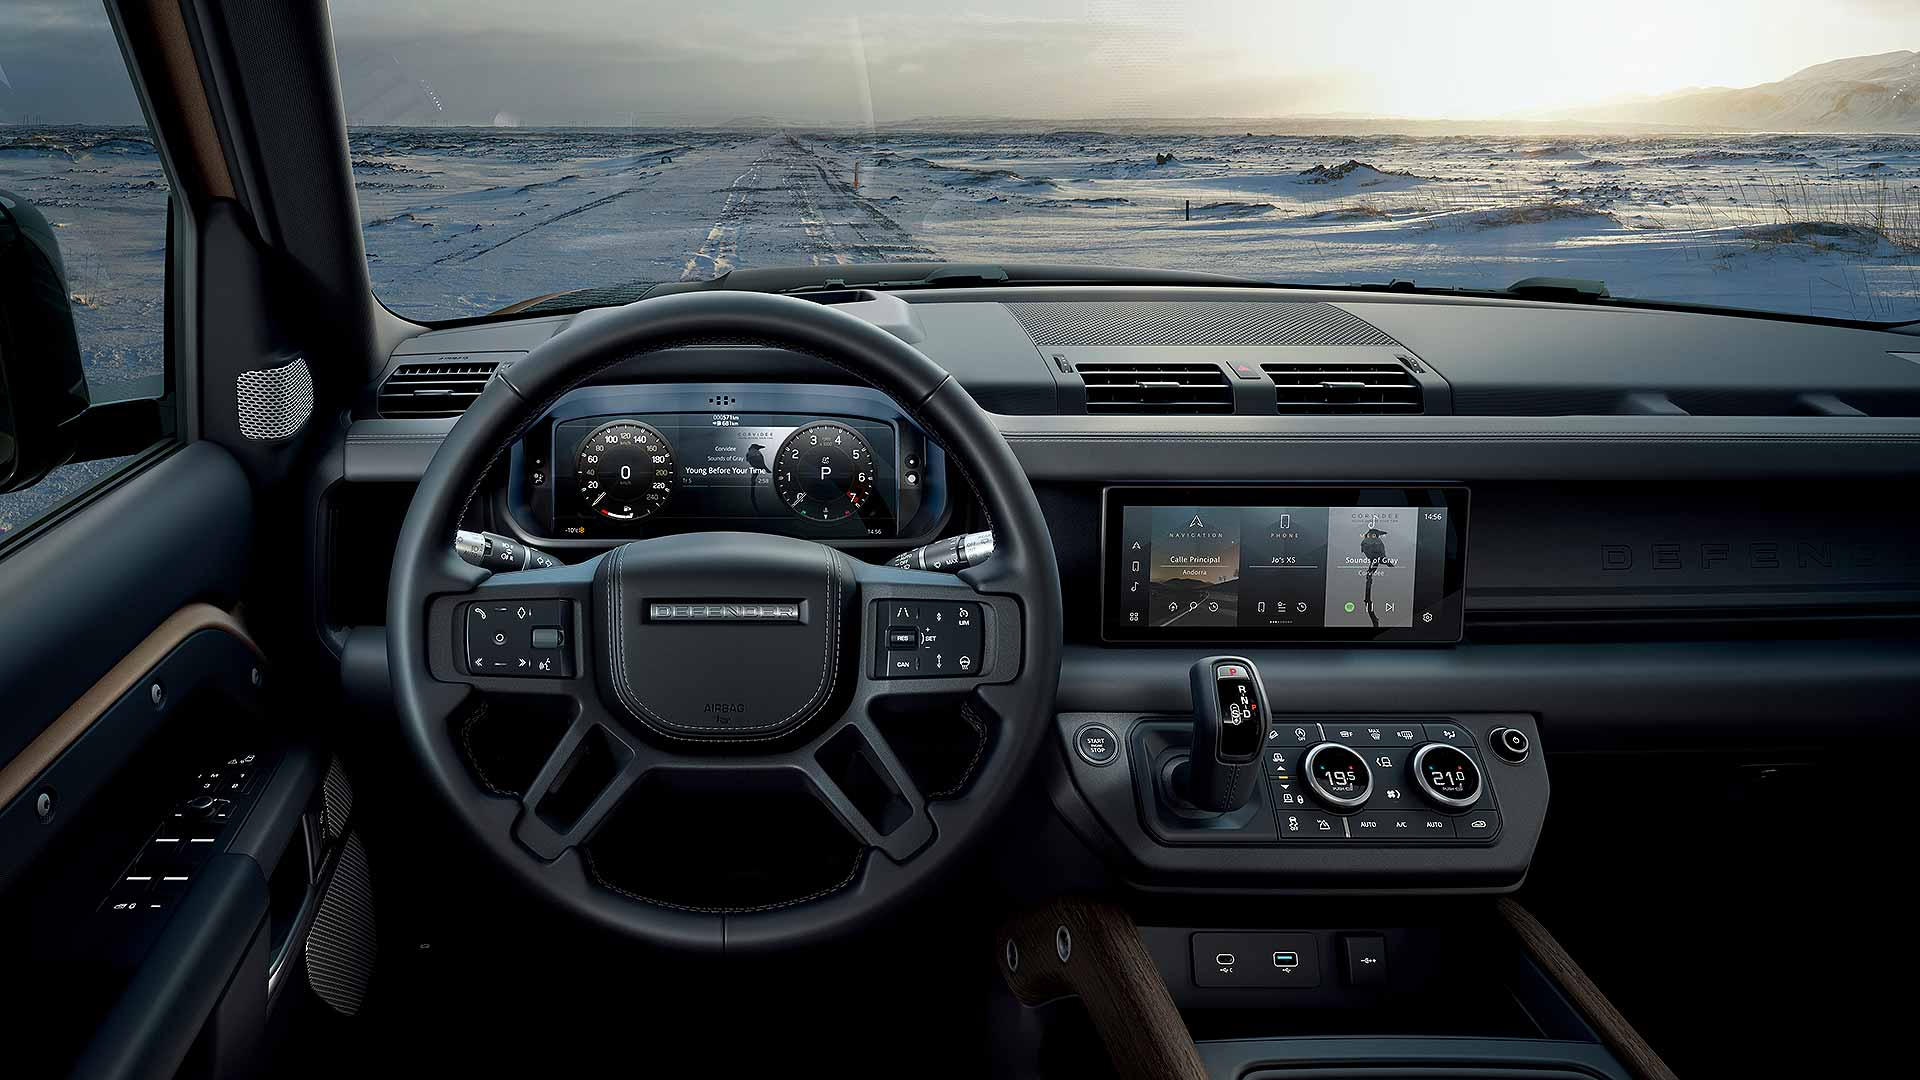 New 2020 Land Rover Defender interior